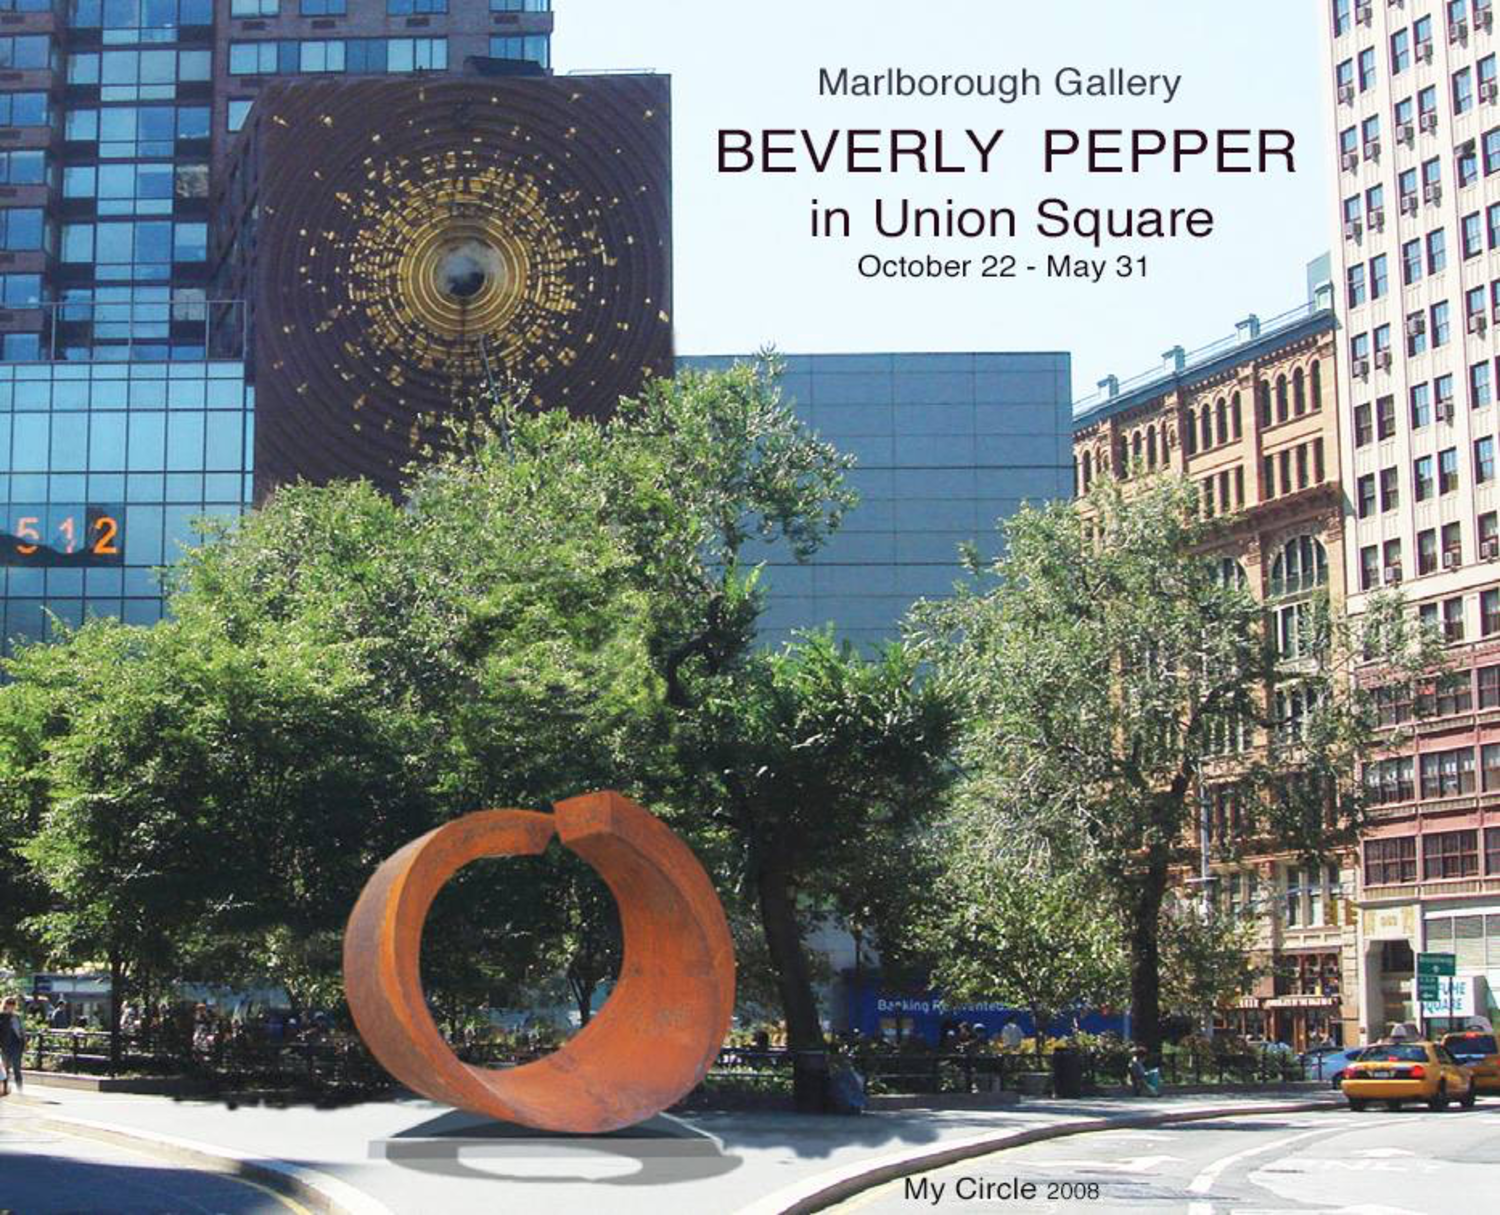 """""""My Circle"""", 2008, 4 mt high. From the Ara Pacis Museum in Rome to the Union Square Park in New York!"""